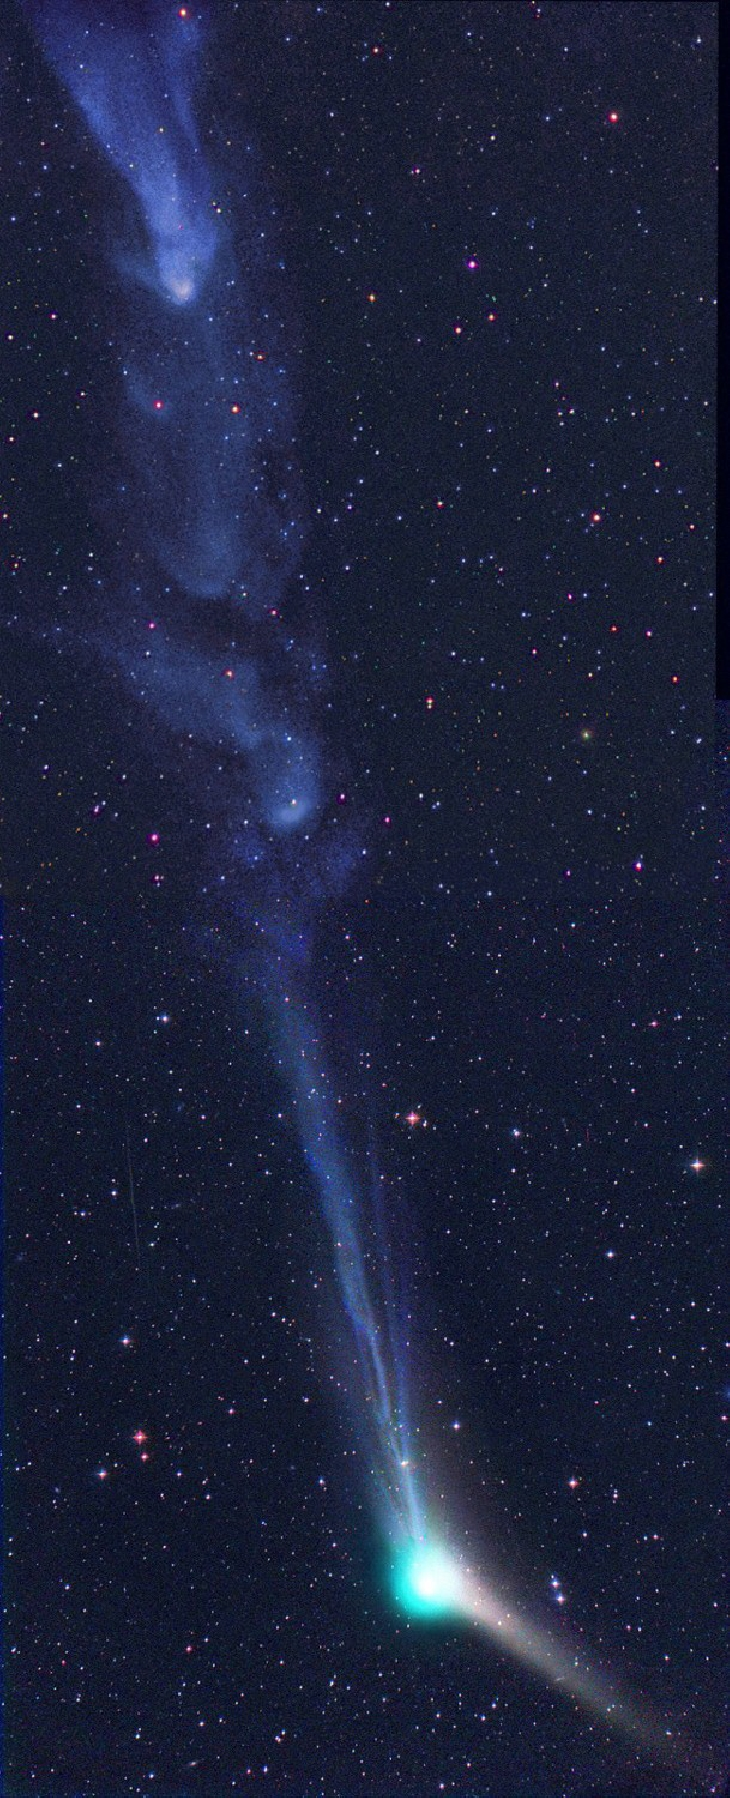 comet catalina, comet catalina magnetic storm picture, comet catalina magnetic storm, magnetic storm comet catalina, catalina magnetic storm pictures, giant orbs comet catalina tail, This plasma blob form as a result of magnetic storms on the tail of Comet Catalina